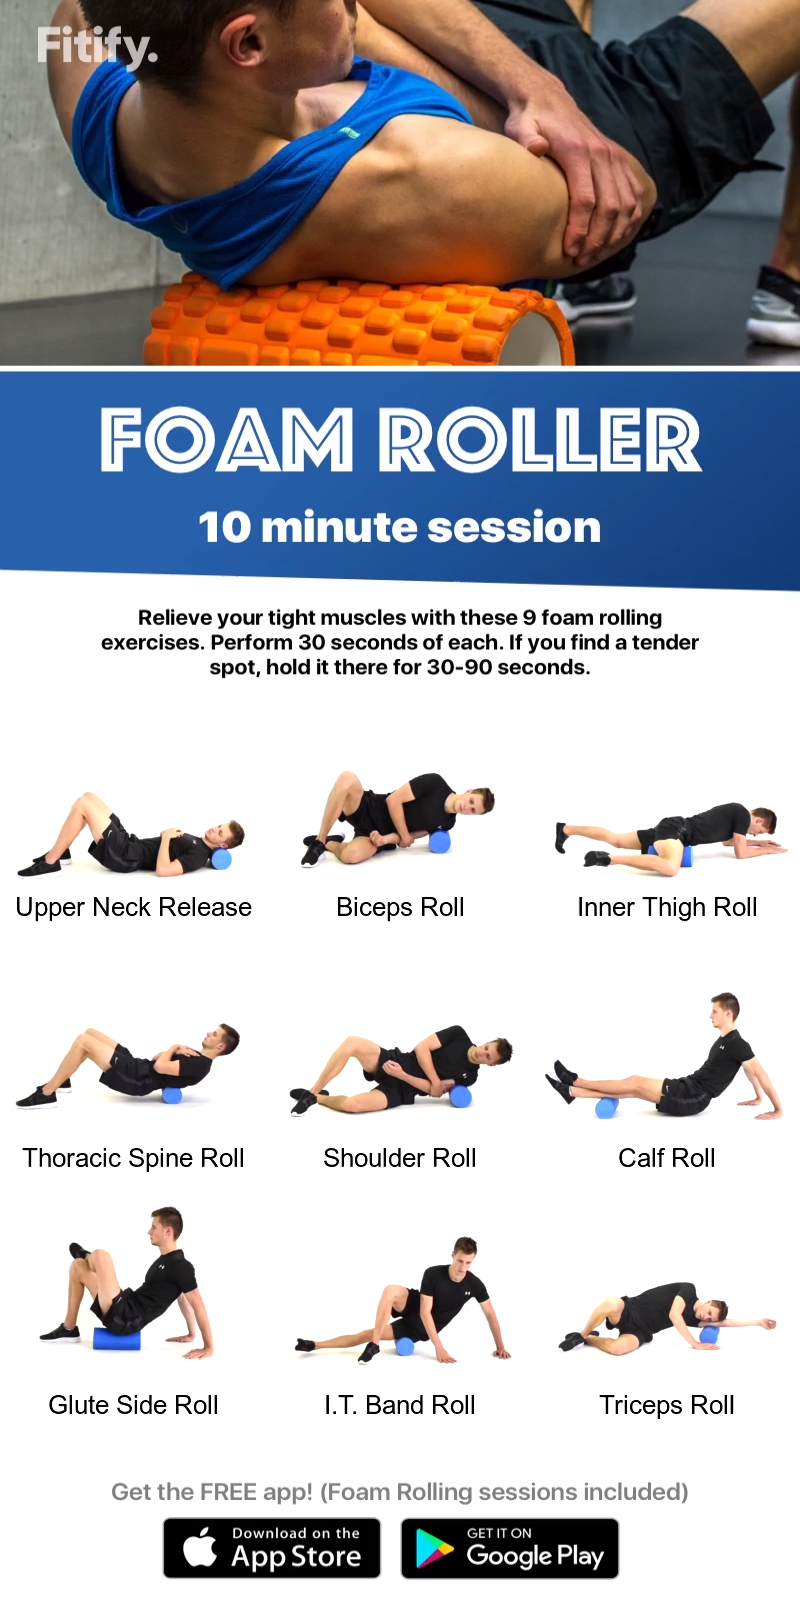 Foam Rolling session to massage and release all important